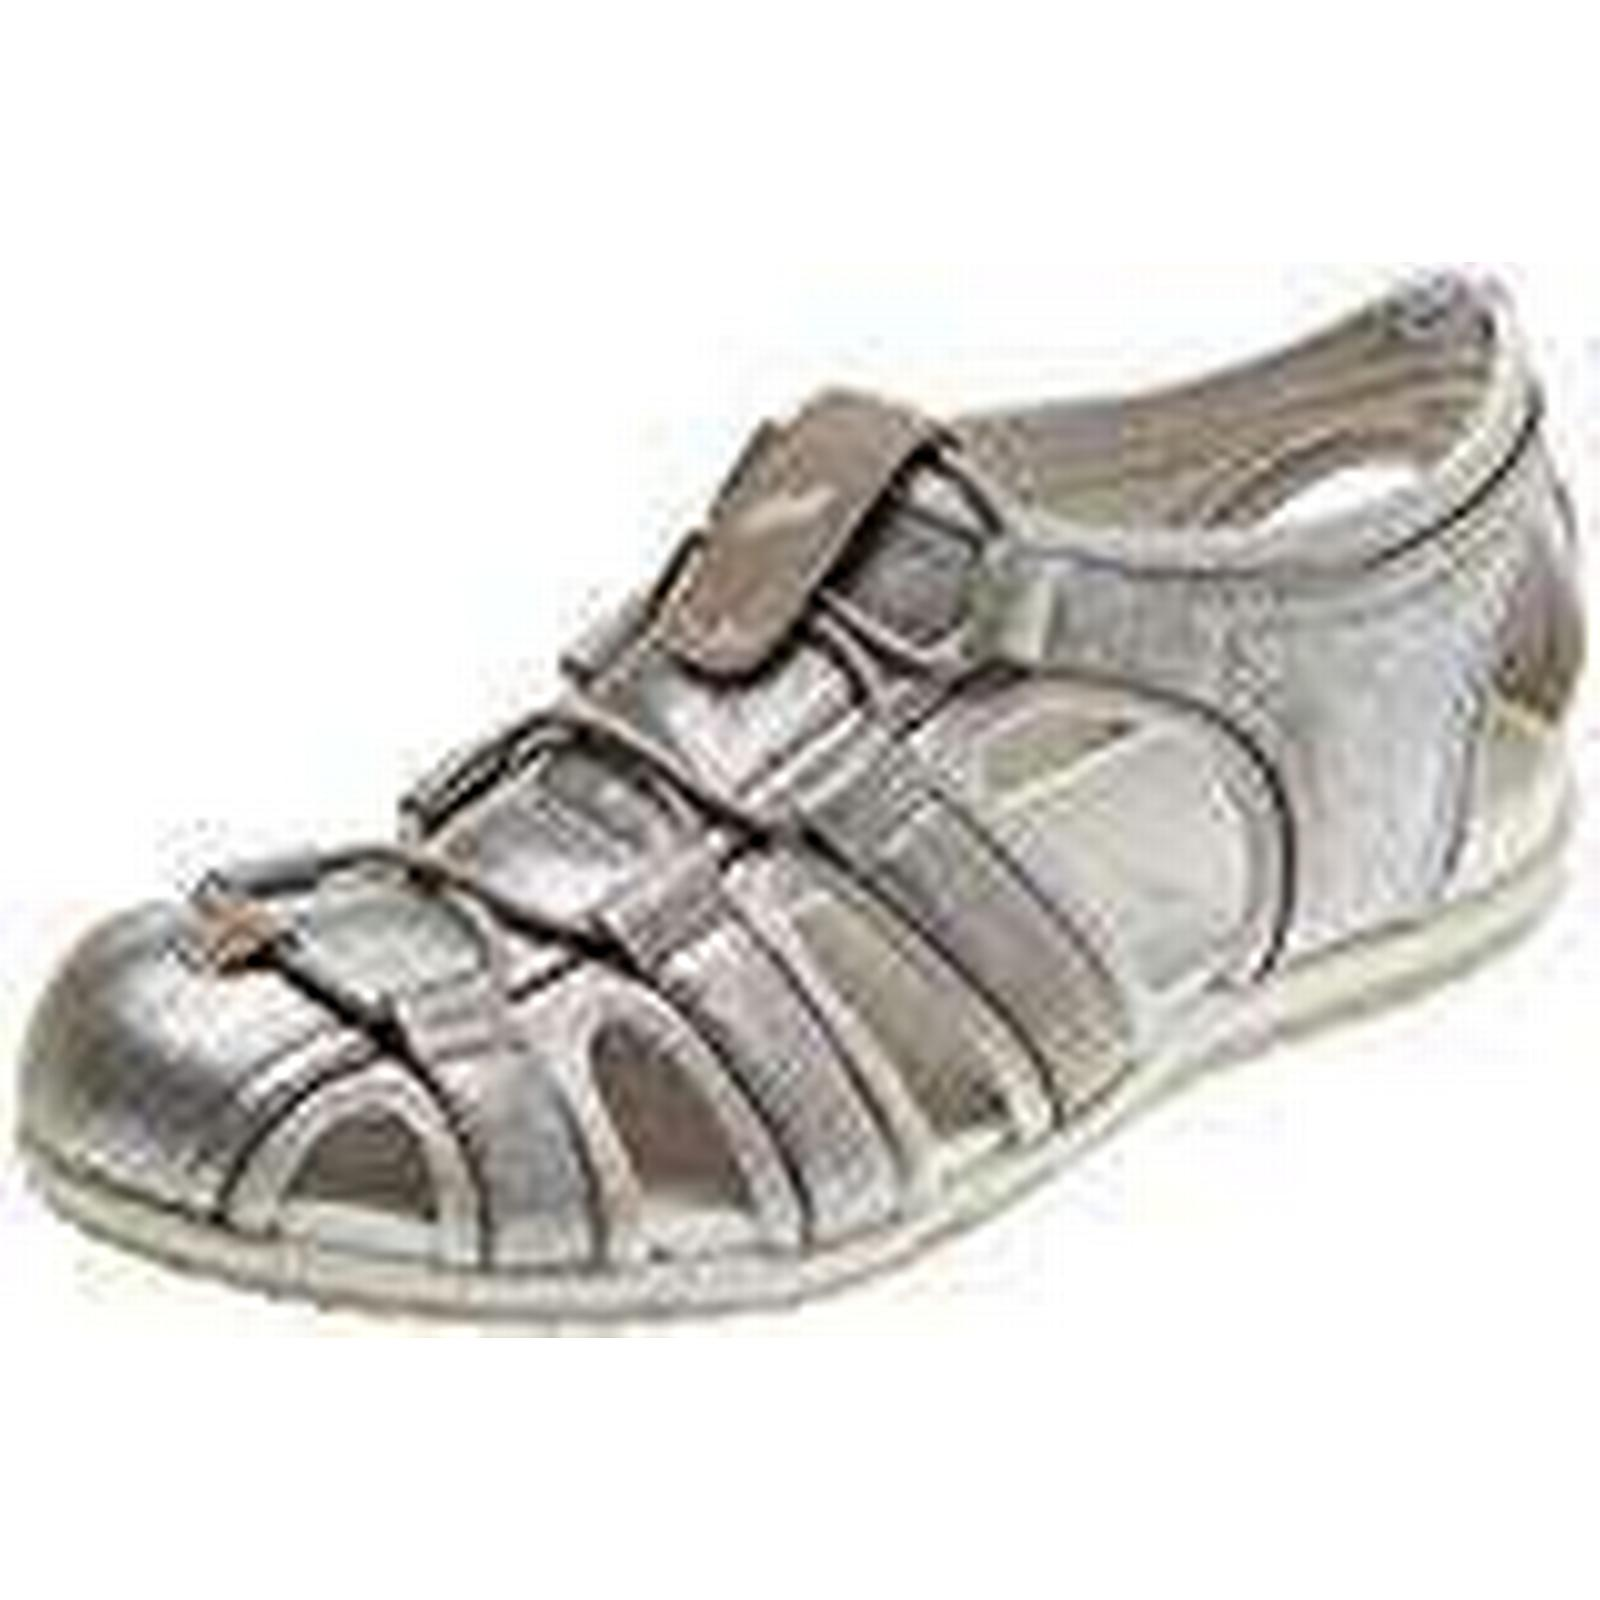 Geox Women's Vega D Open Toe C0742), Sandals, (LT Grey/Off White C0742), Toe 5 UK 5 UK 807e70